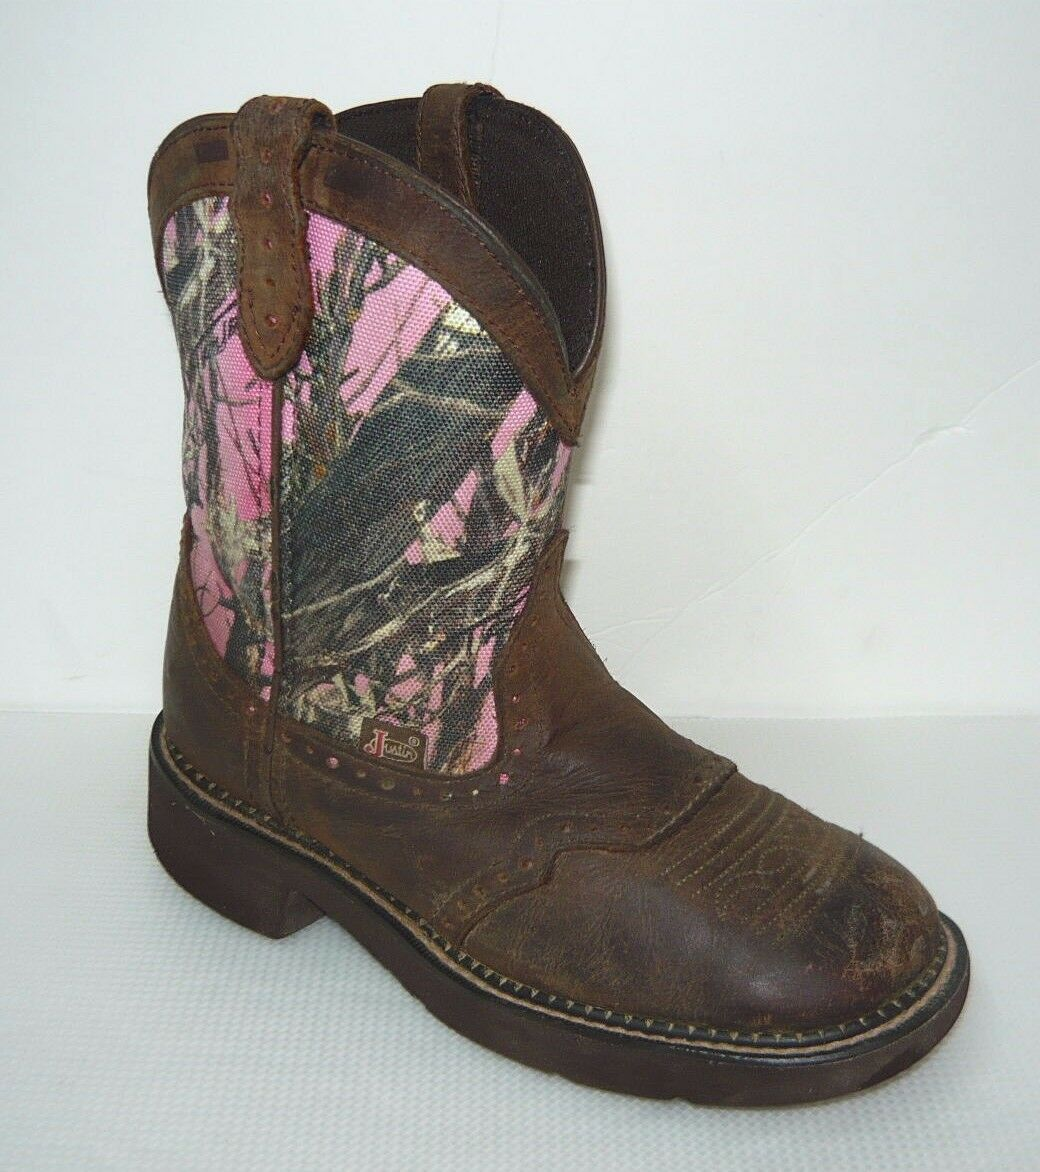 Justin Boots Gypsy Collection L9610 Women's Boot Sz 6.5B